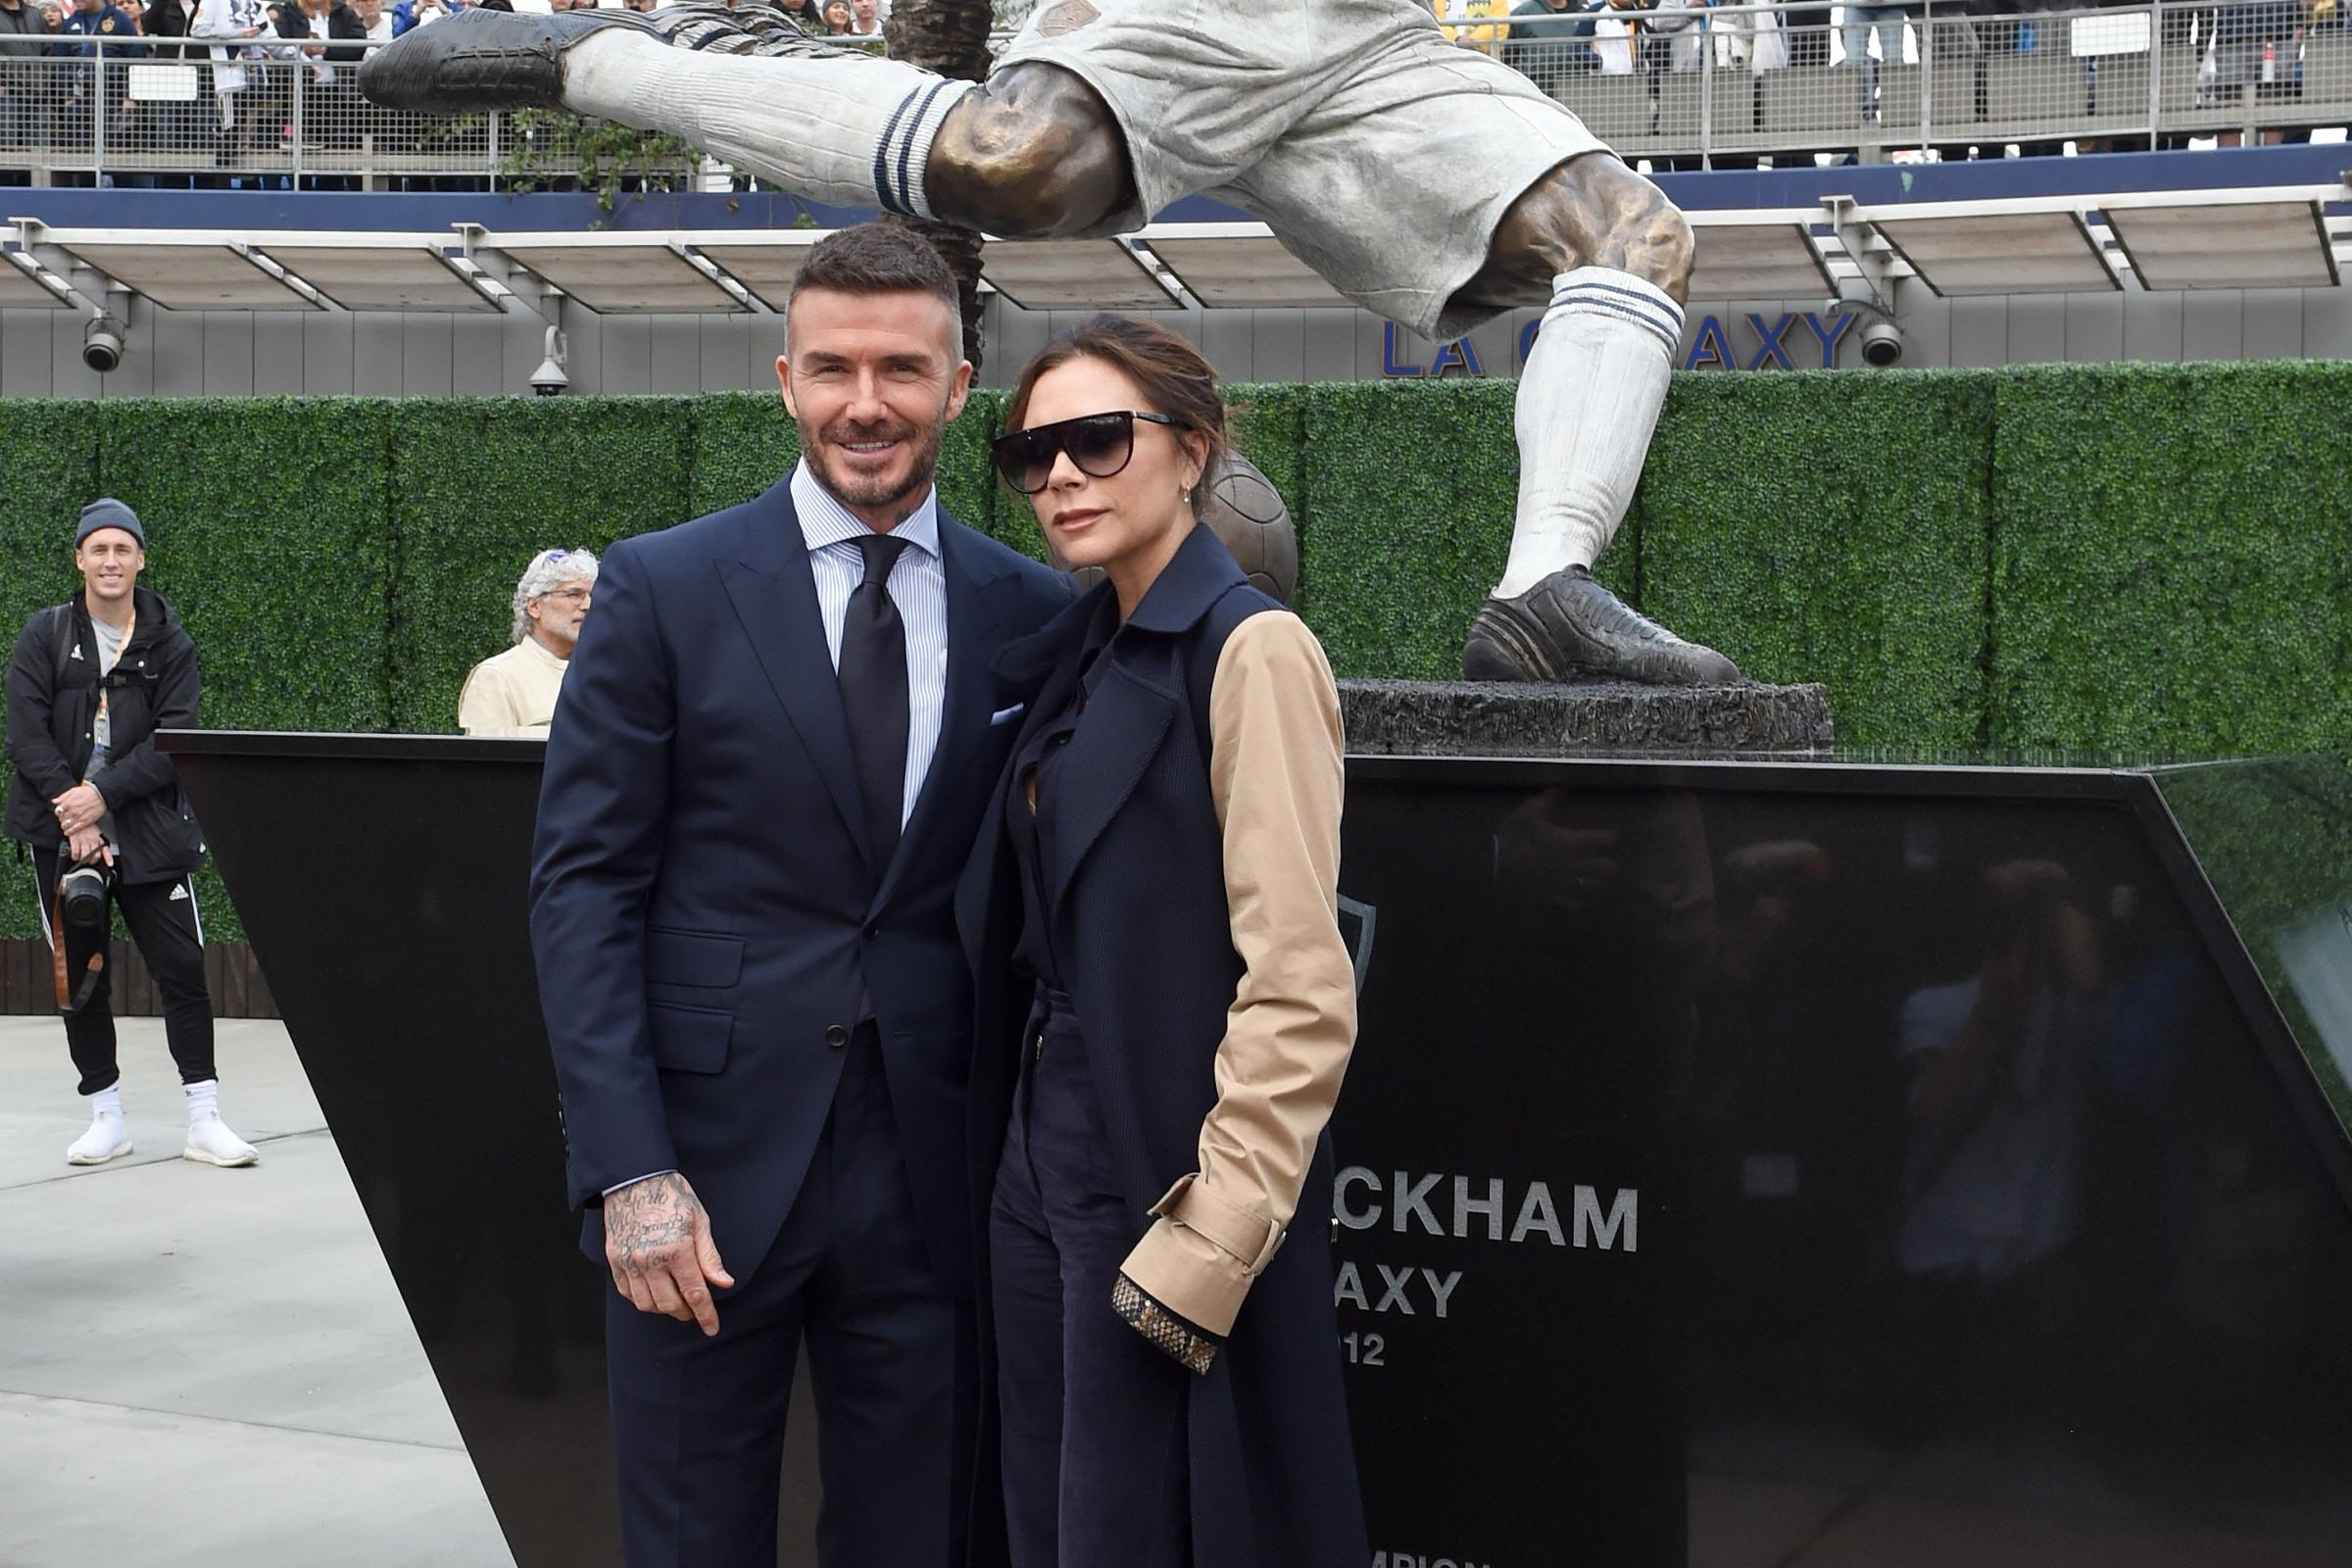 David Beckham attends a statue unveiling at the LA Galaxy's stadium